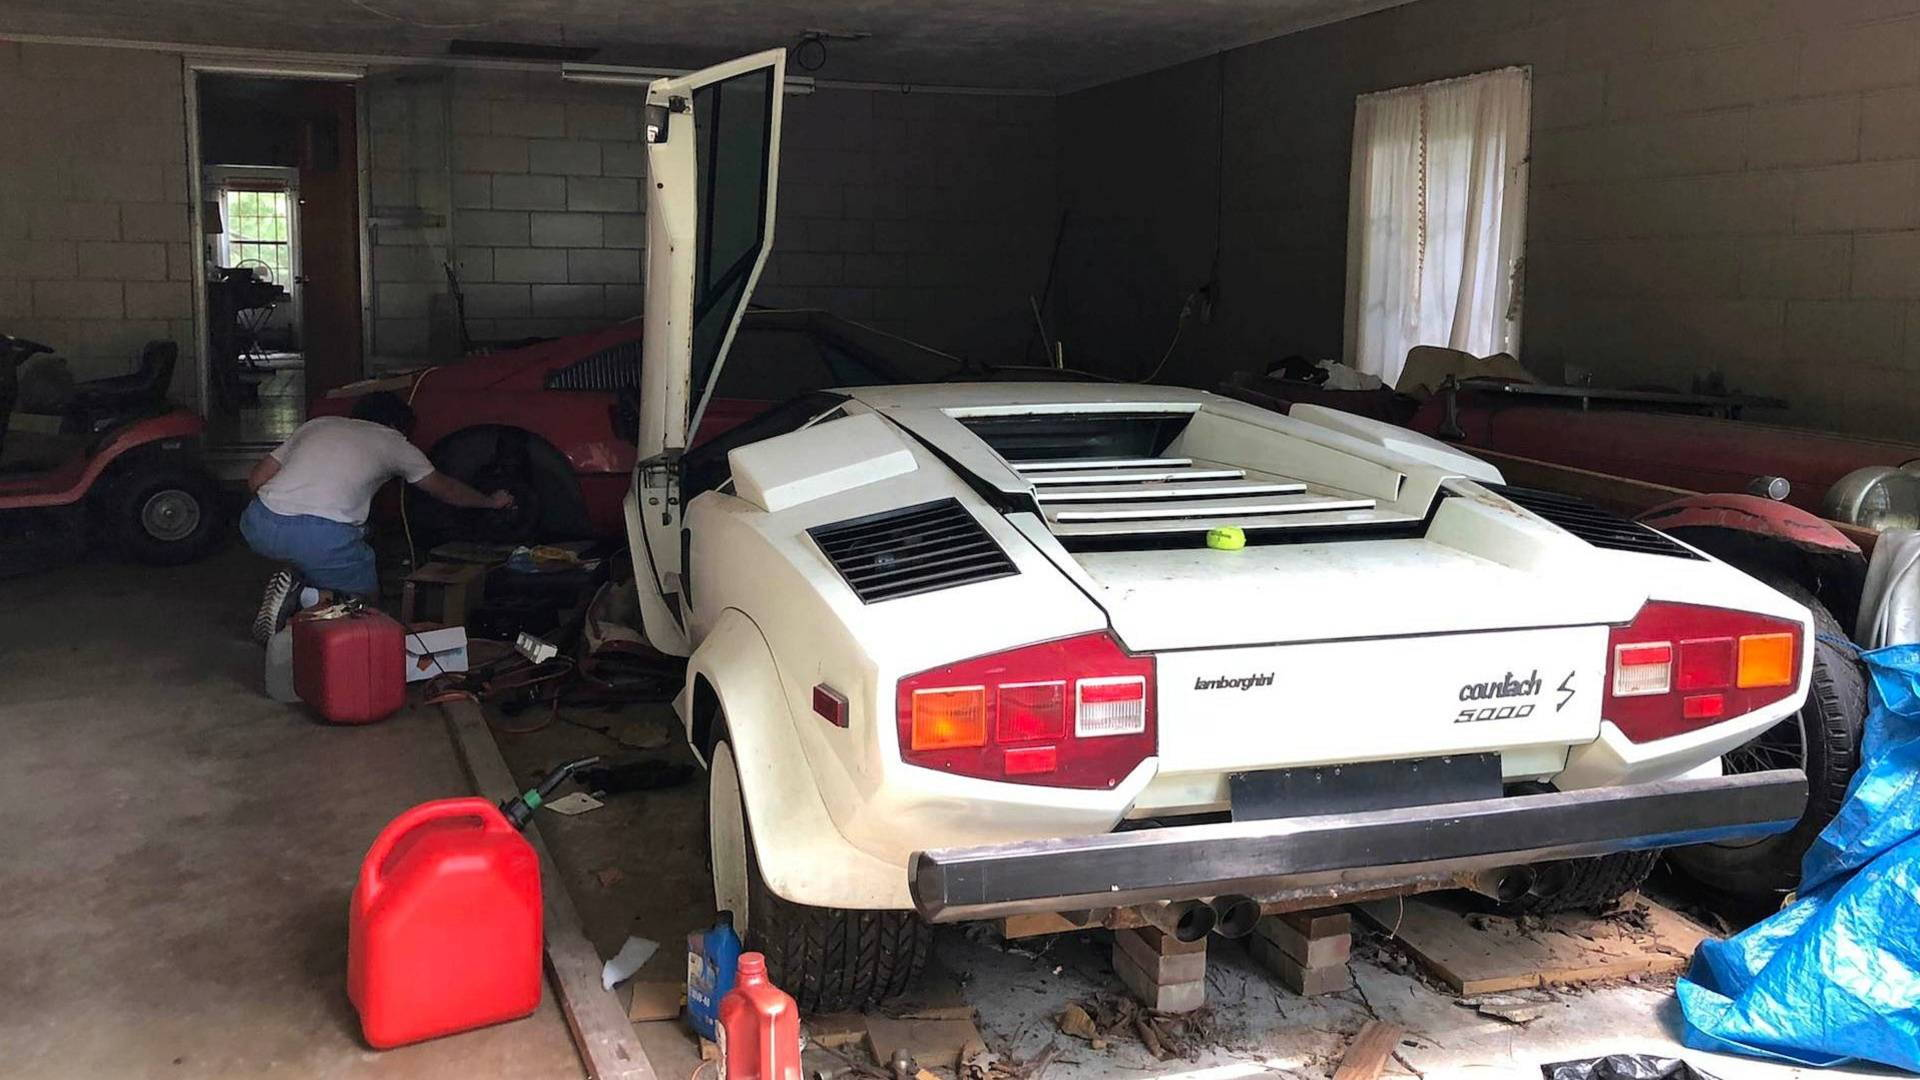 Neglected Lamborghini Countach Gathering Dust In Grandma S Garage